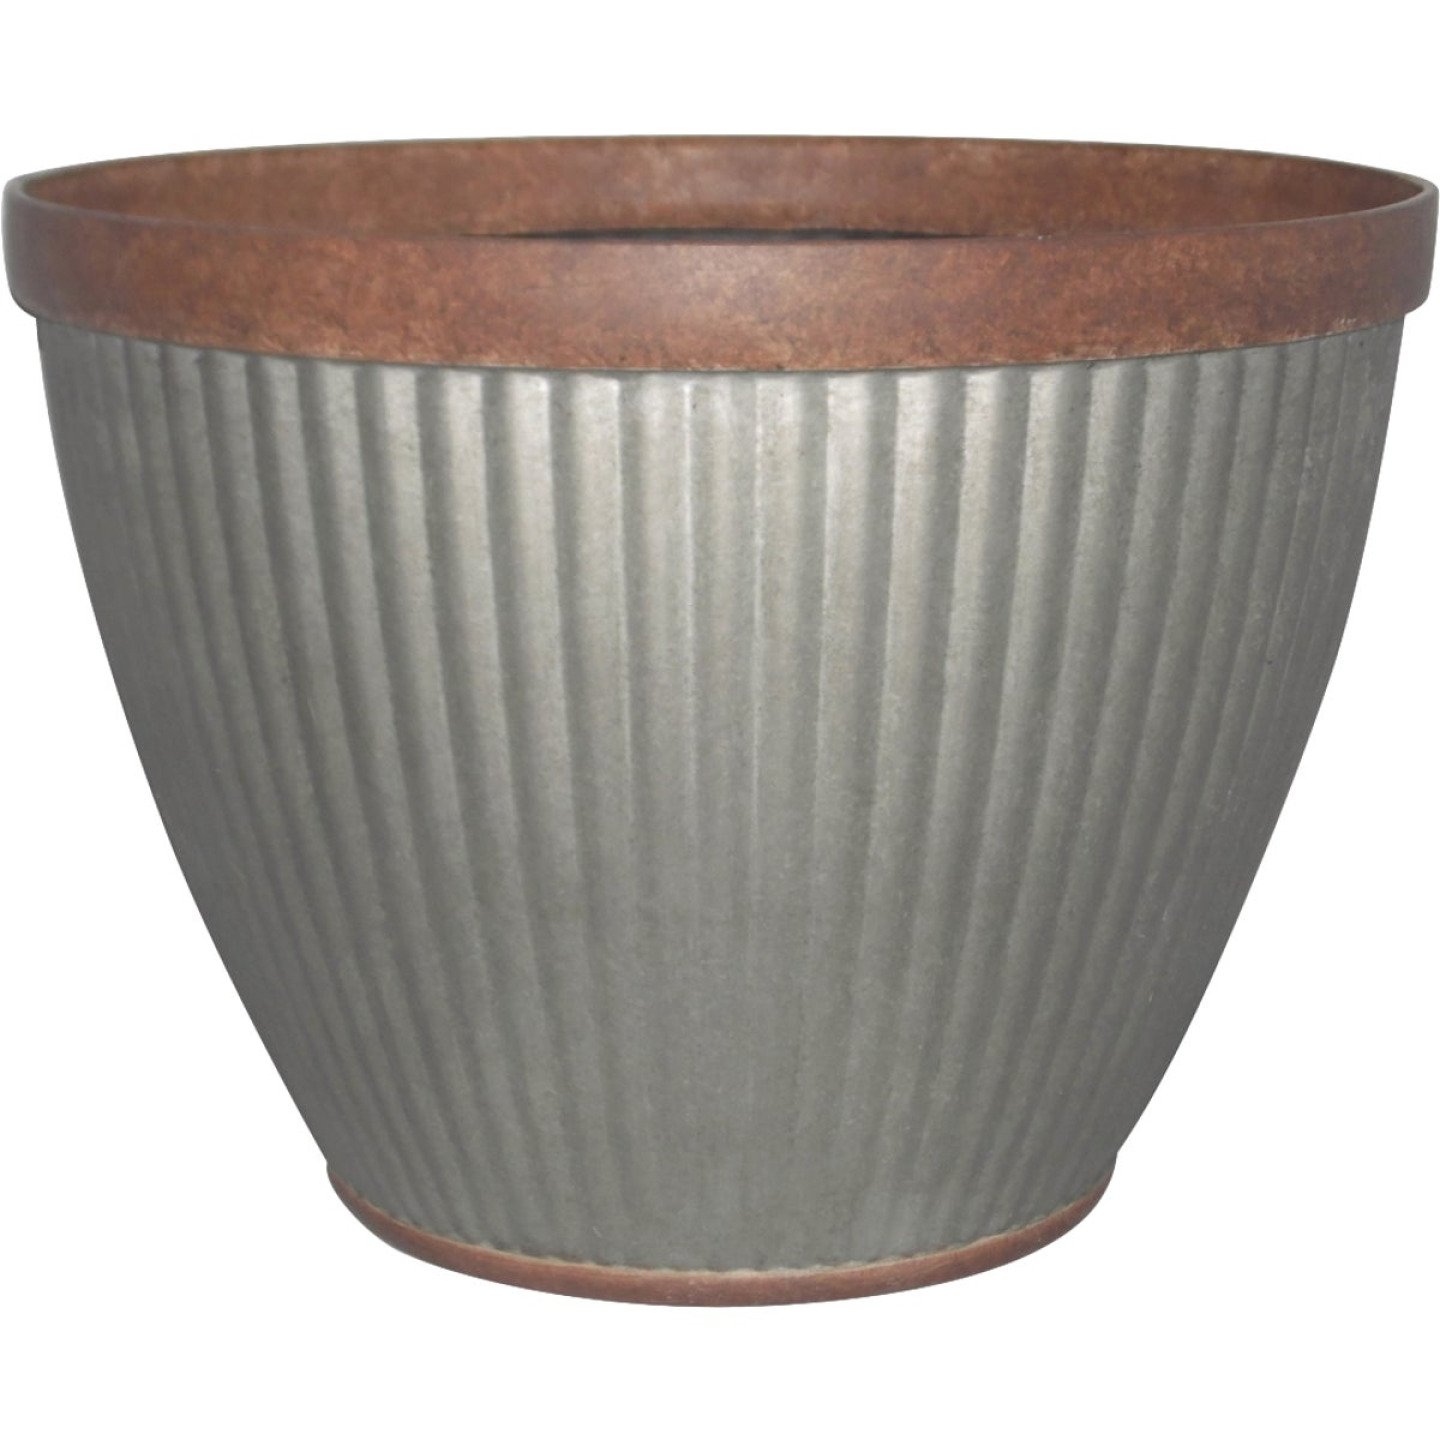 Southern Patio Westlake 10 In. Resin Rustic Galvanized Round Pleated Planter Image 1